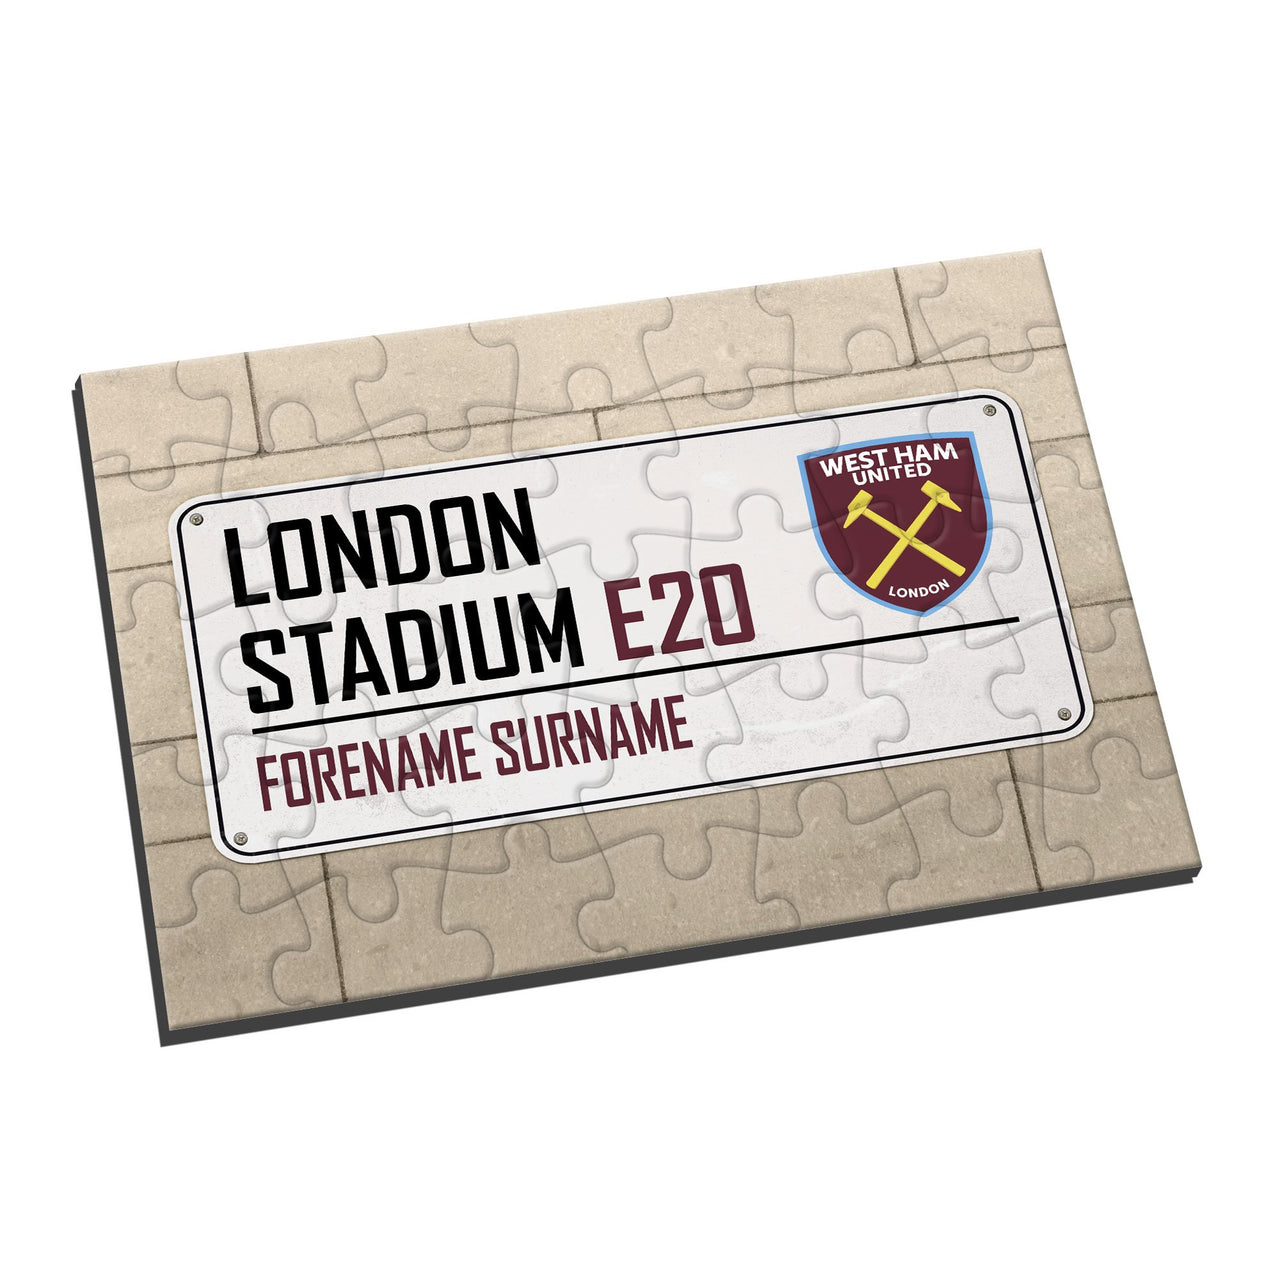 West Ham United FC Street Sign Jigsaw